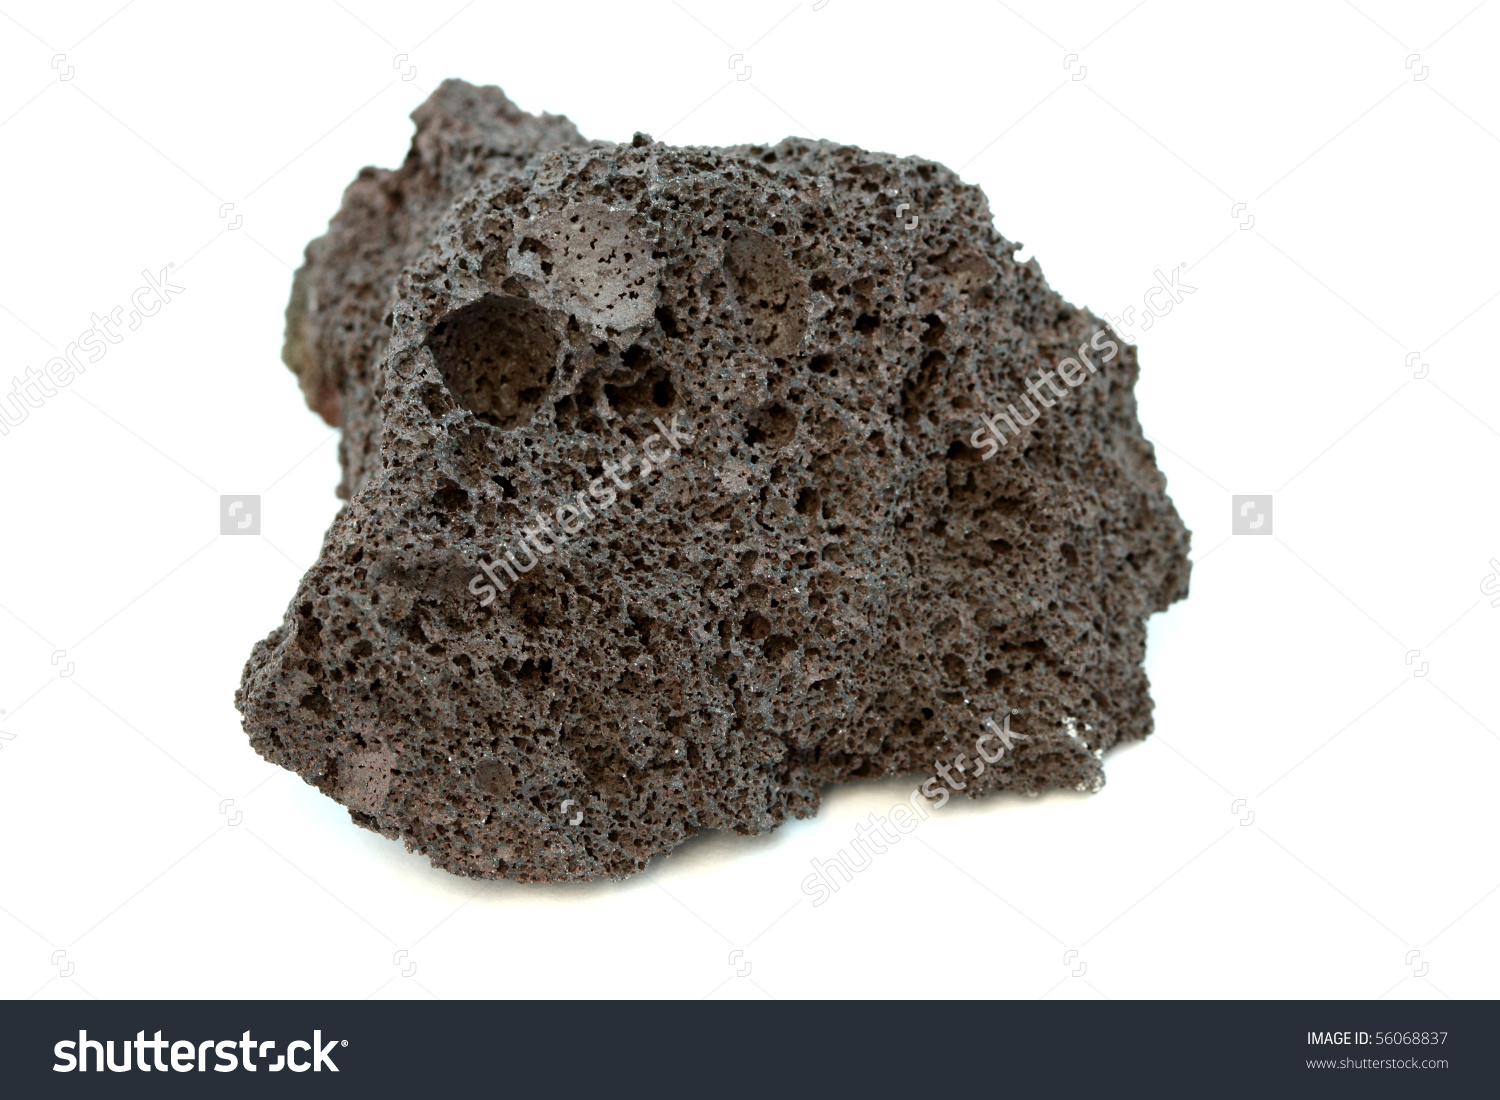 Sample Igneous Rock Scoria Stock Photo 56068837.